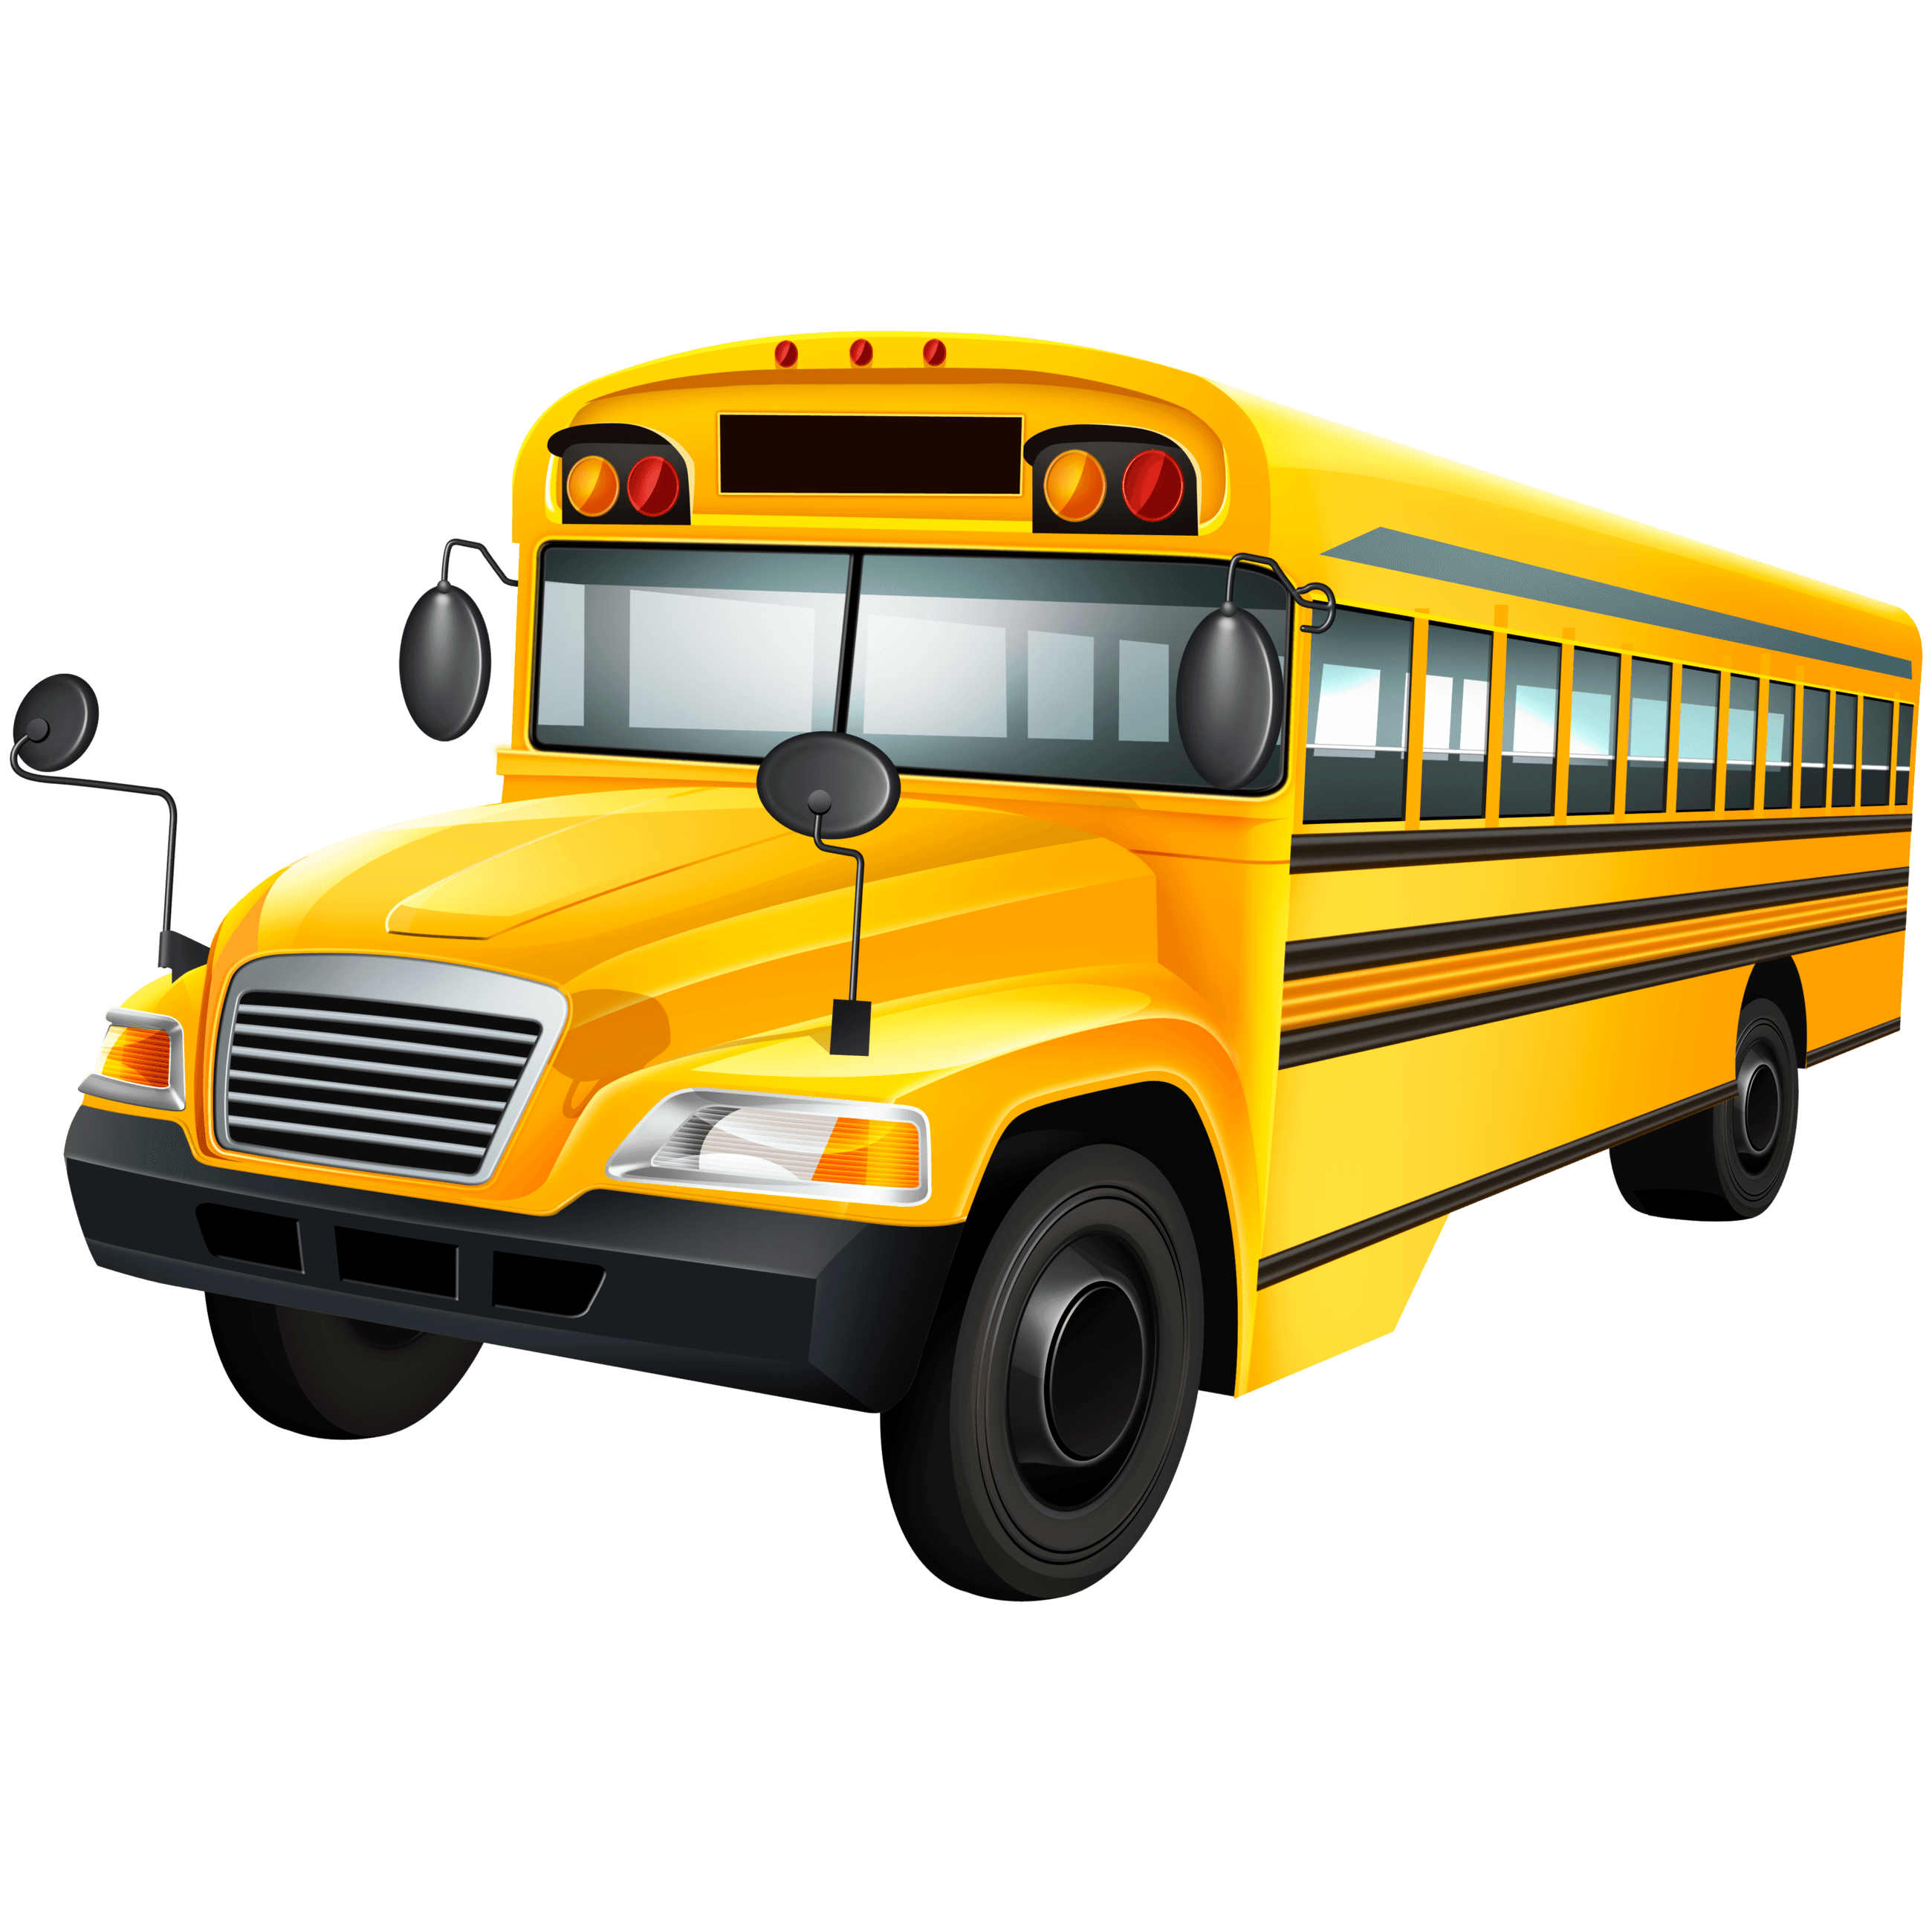 1352505_travelToSchool_Standard_GDE